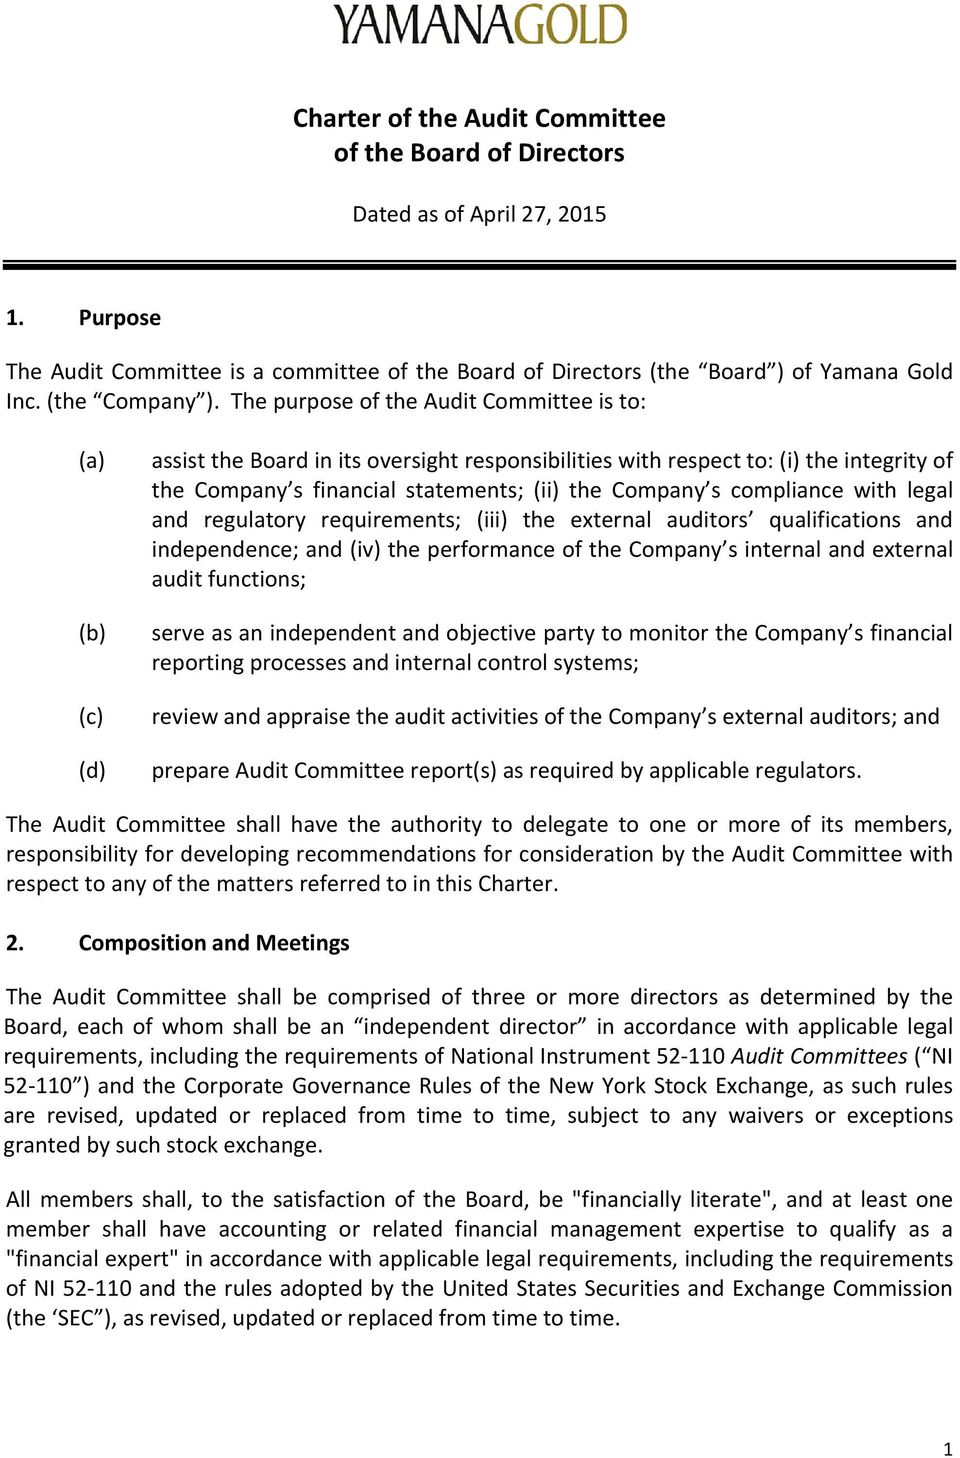 Charter of the Audit Committee of the Board of Directors - PDF